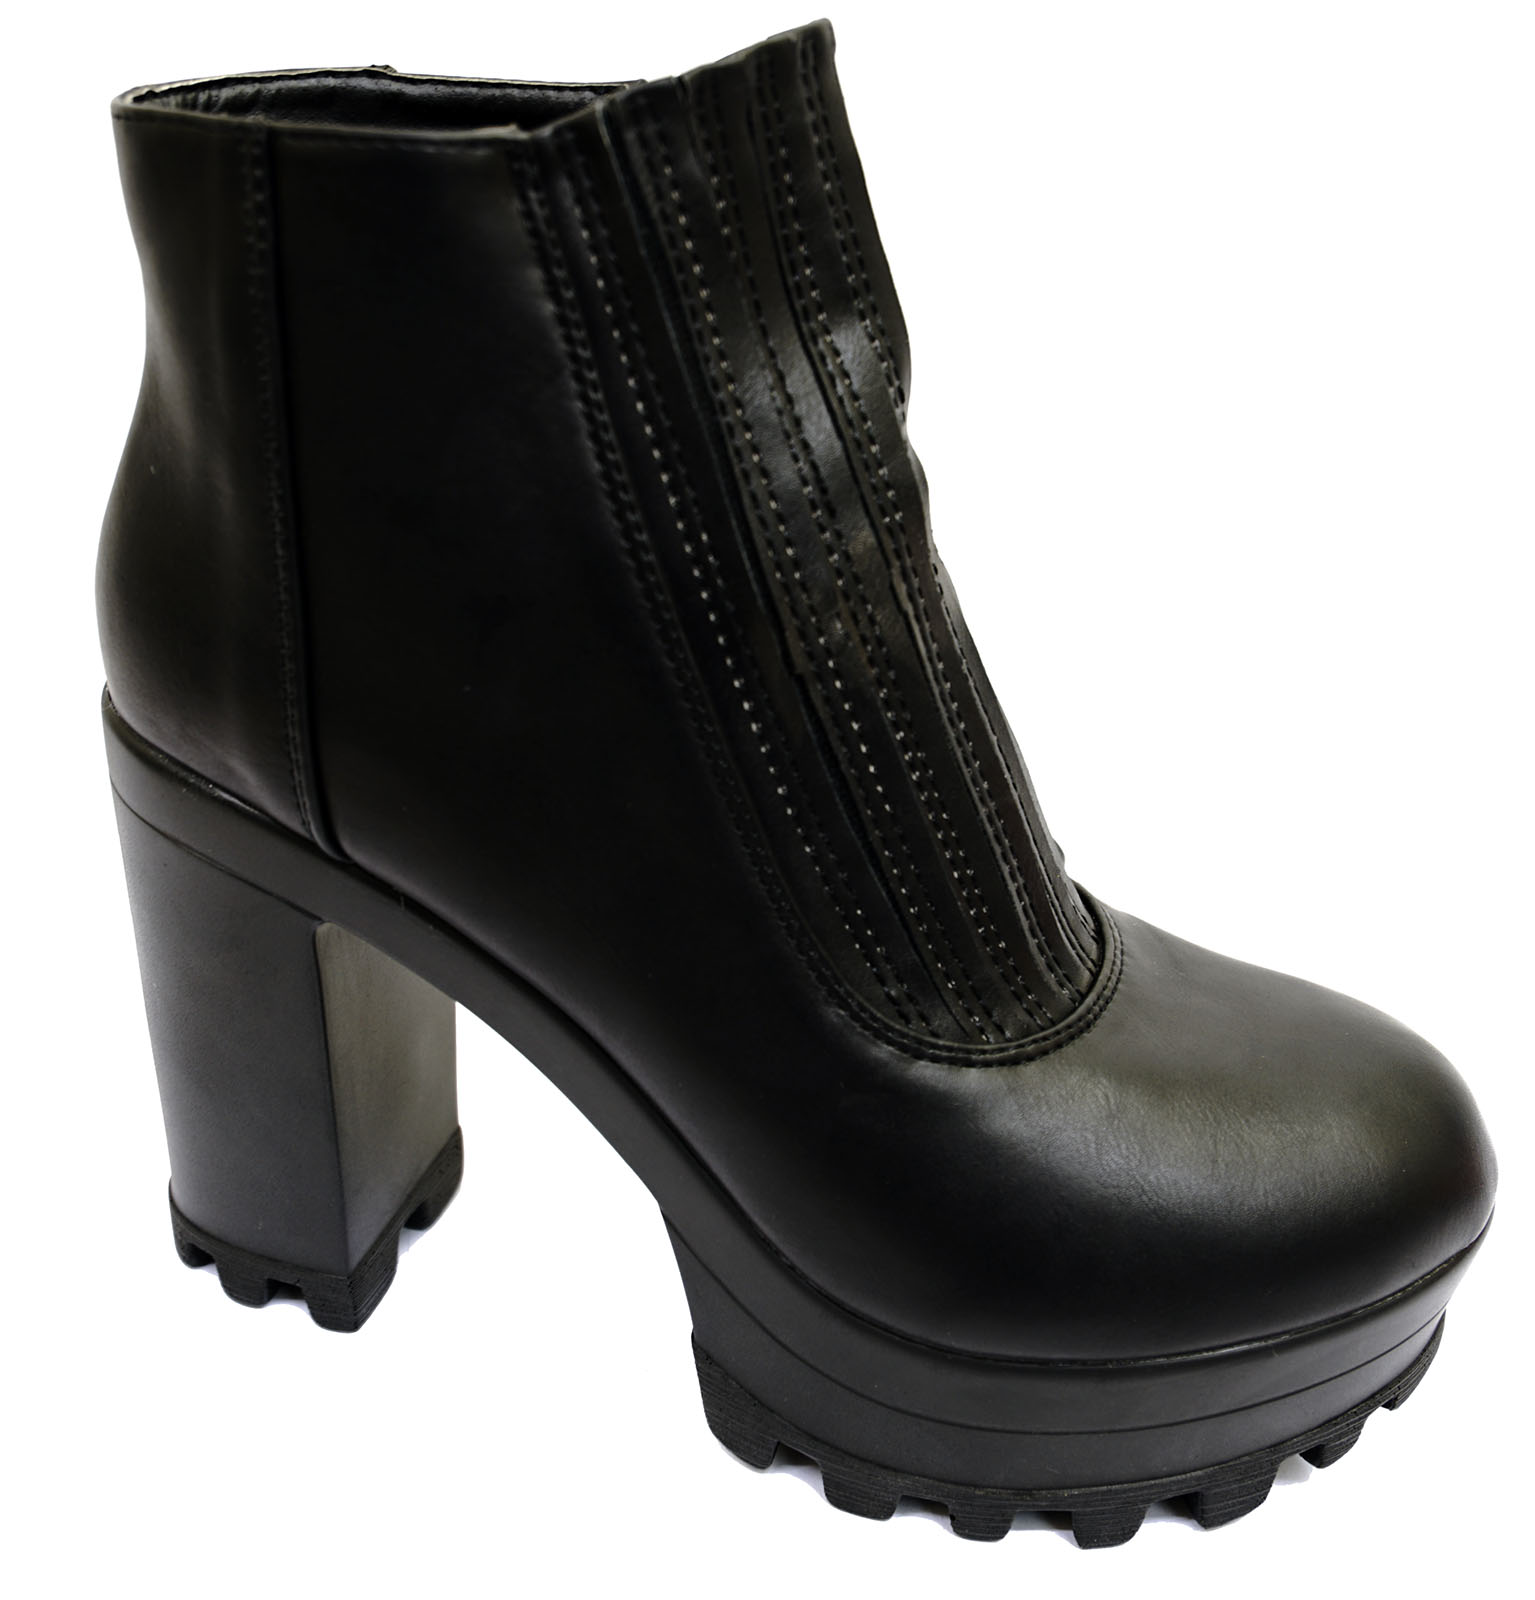 104fd0219903 Sentinel WOMENS BLACK ELASTIC PANEL PULL-ON ANKLE BIKER CALF CHUNKY BOOTS  SHOES SIZES 3-